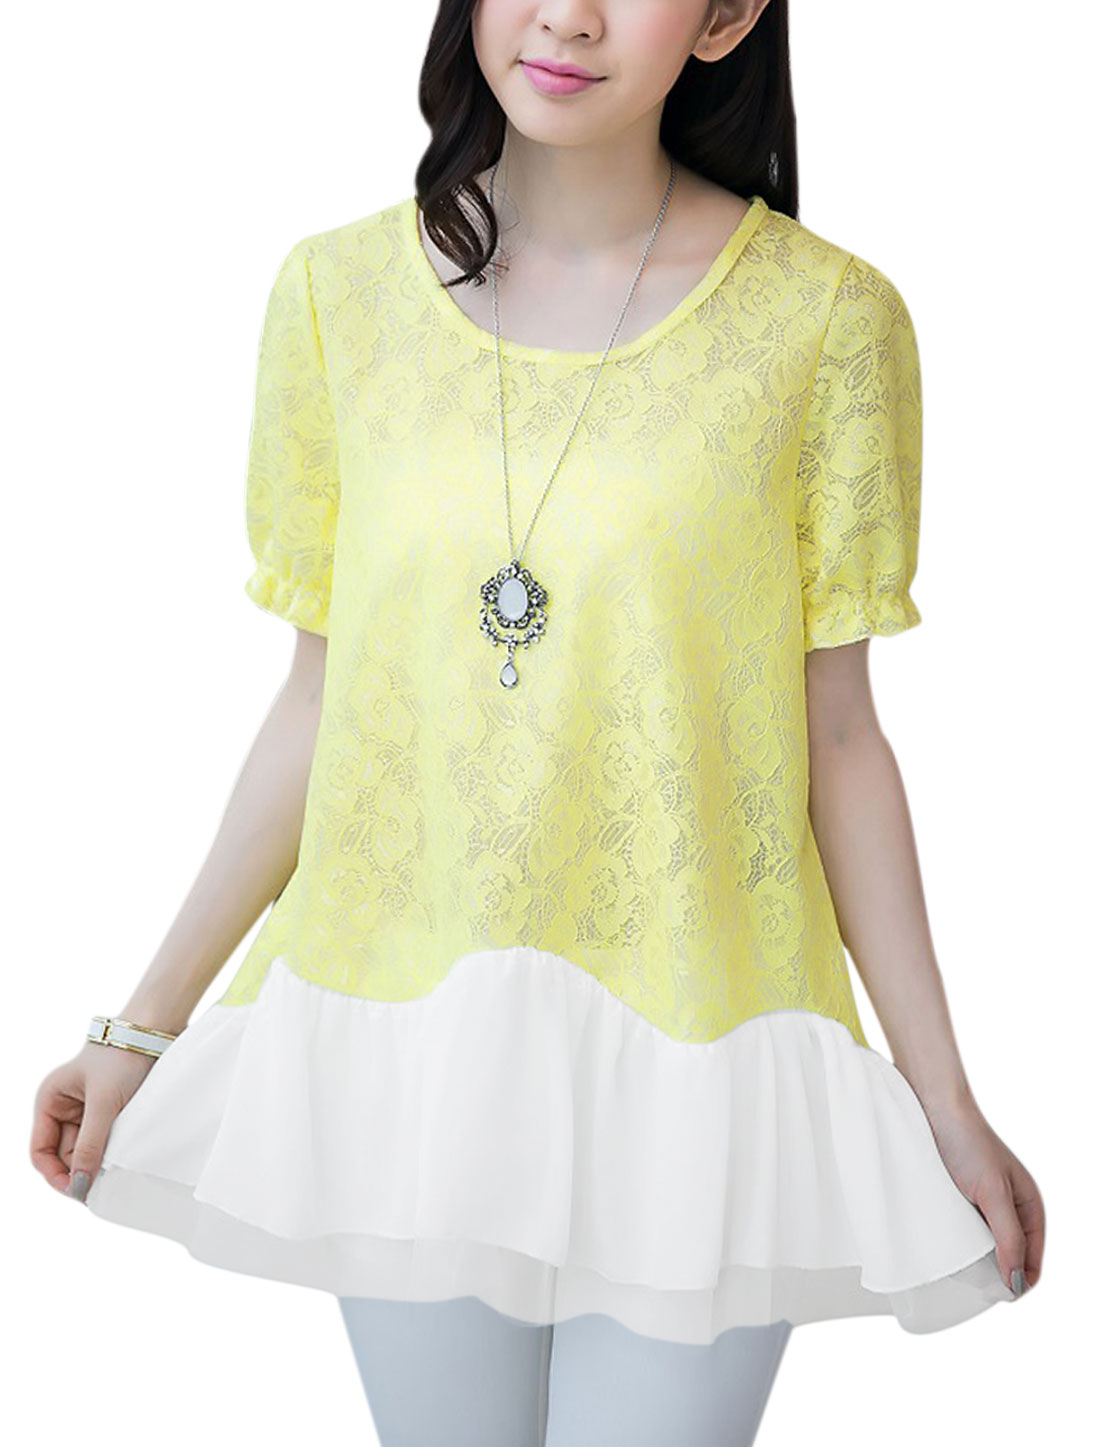 Woman's Chiffon Panel Short Sleeve Elastic Cuffs Lace Top Light Yellow M